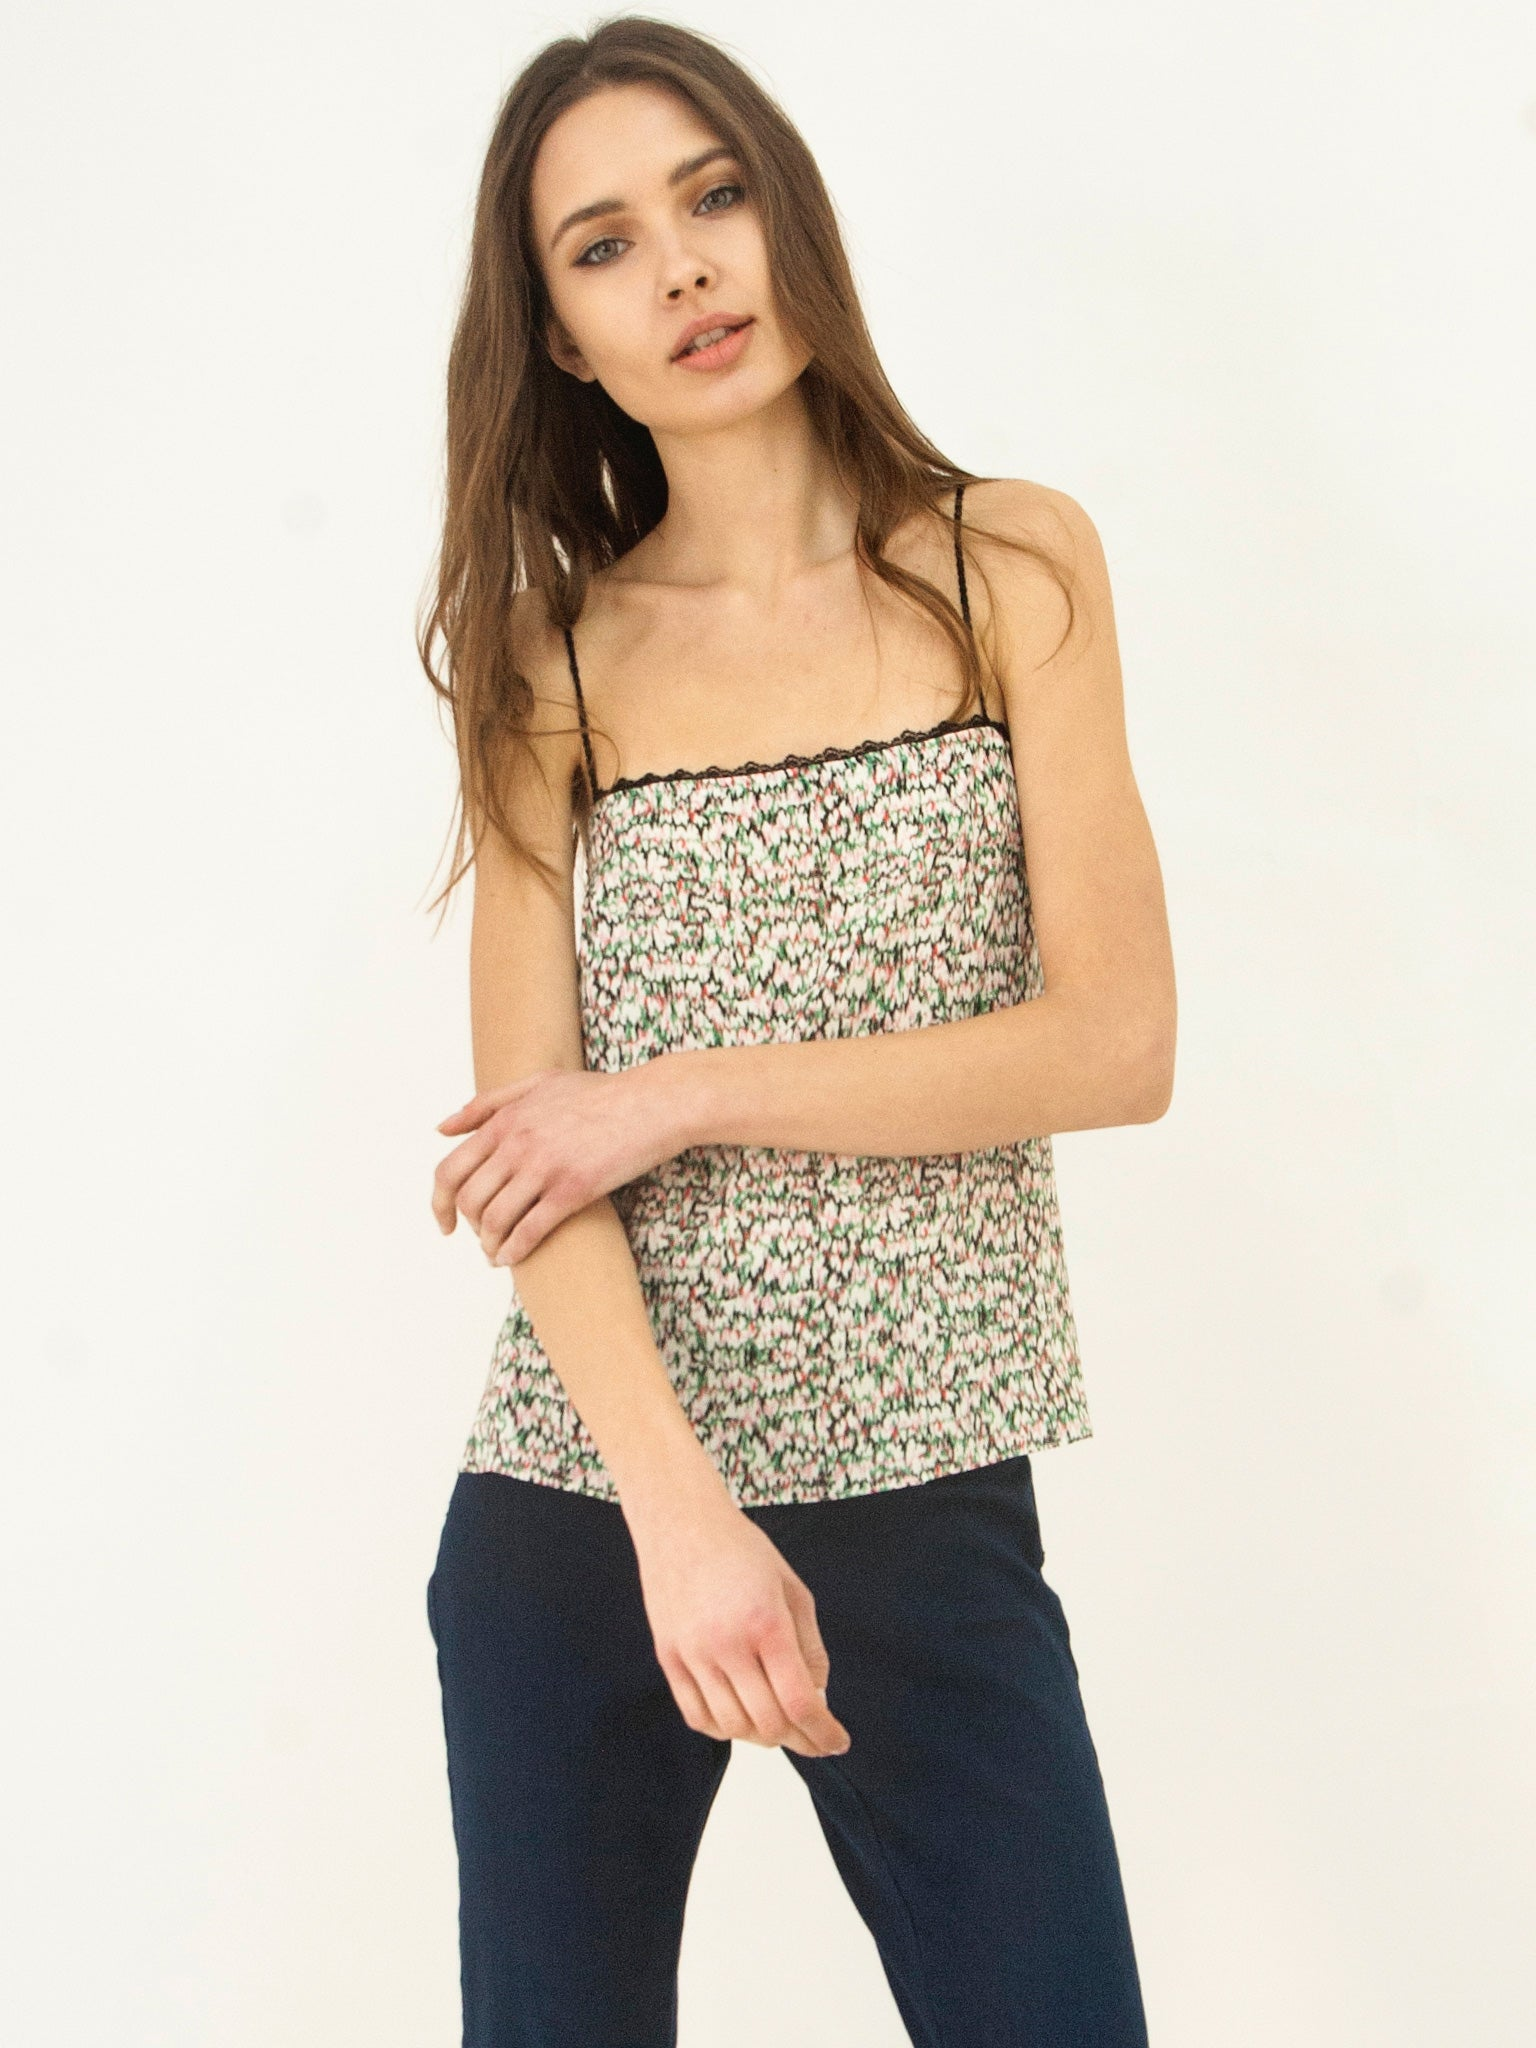 Sweet Impressions Camisole